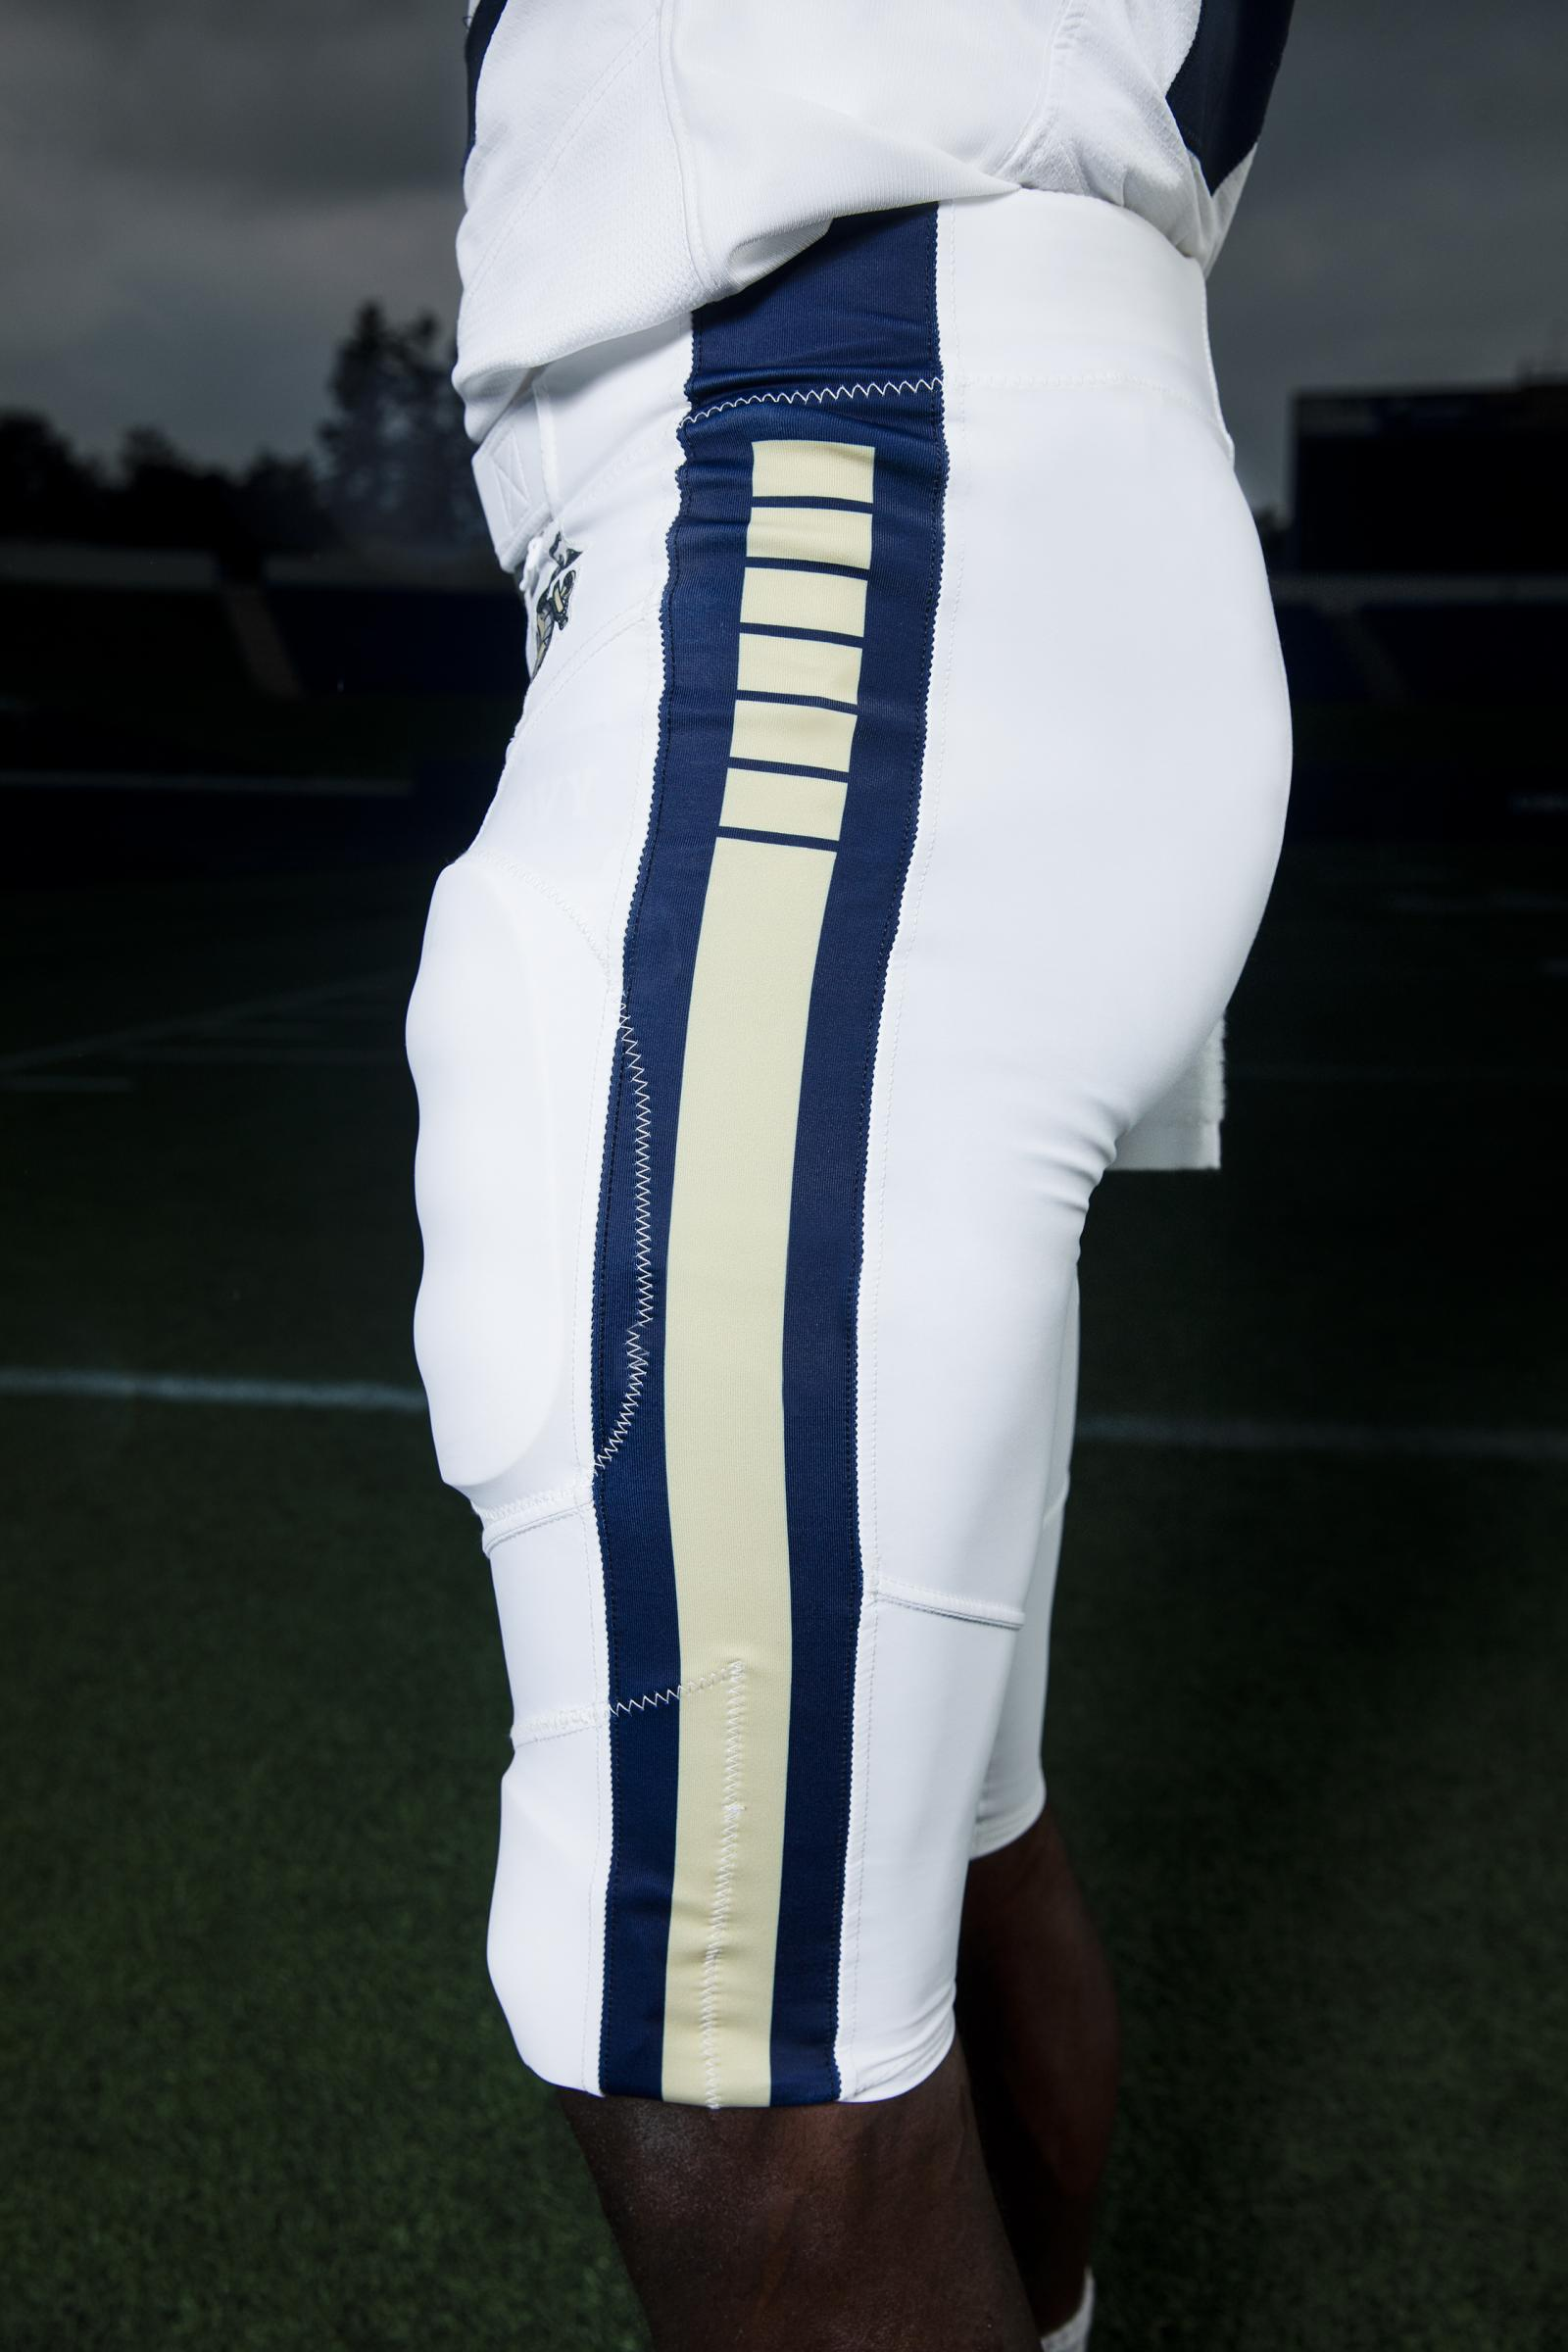 To match the jersey, the pants were designed in the same shade of navy blue with a stripe down the panel featuring six breaks. This same design is echoed on the helmet, since the United States Navy was founded by Congress with six frigates.